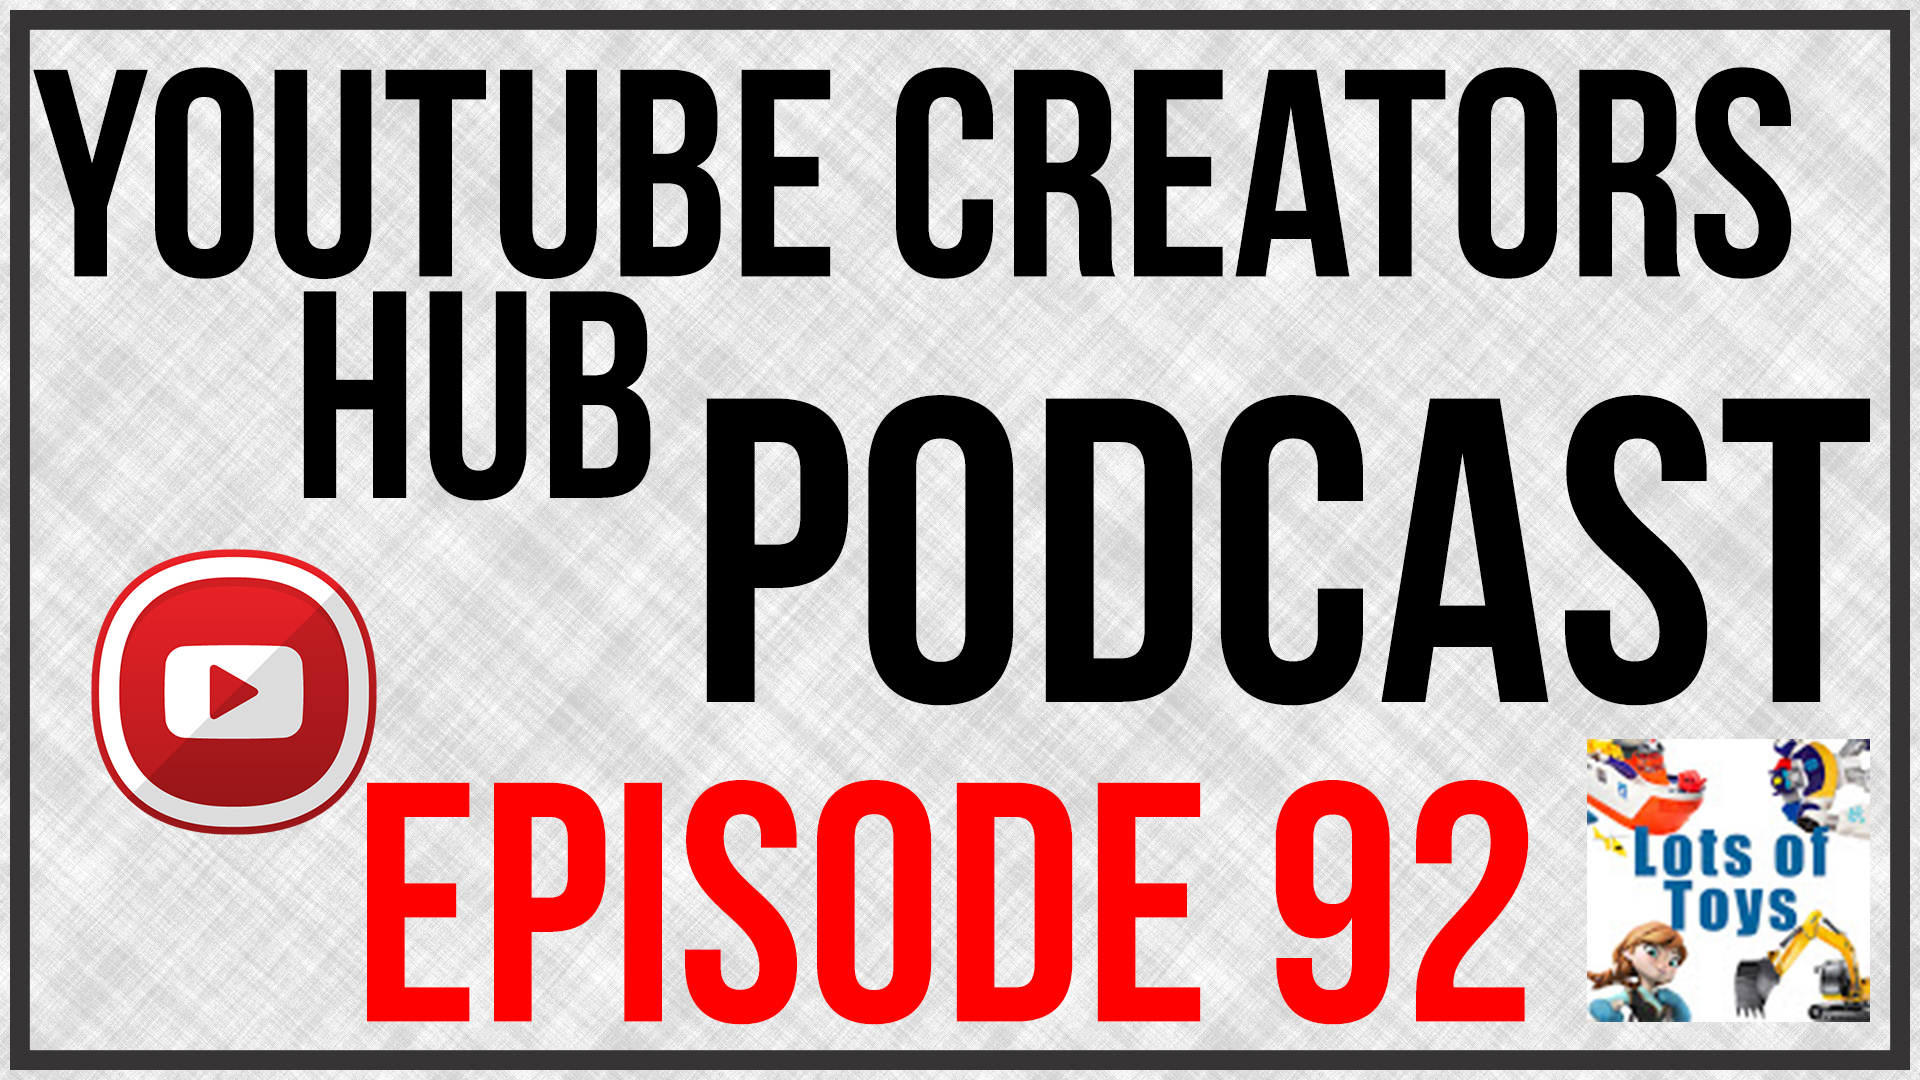 YouTube Creators Hub Podcast Episode 92